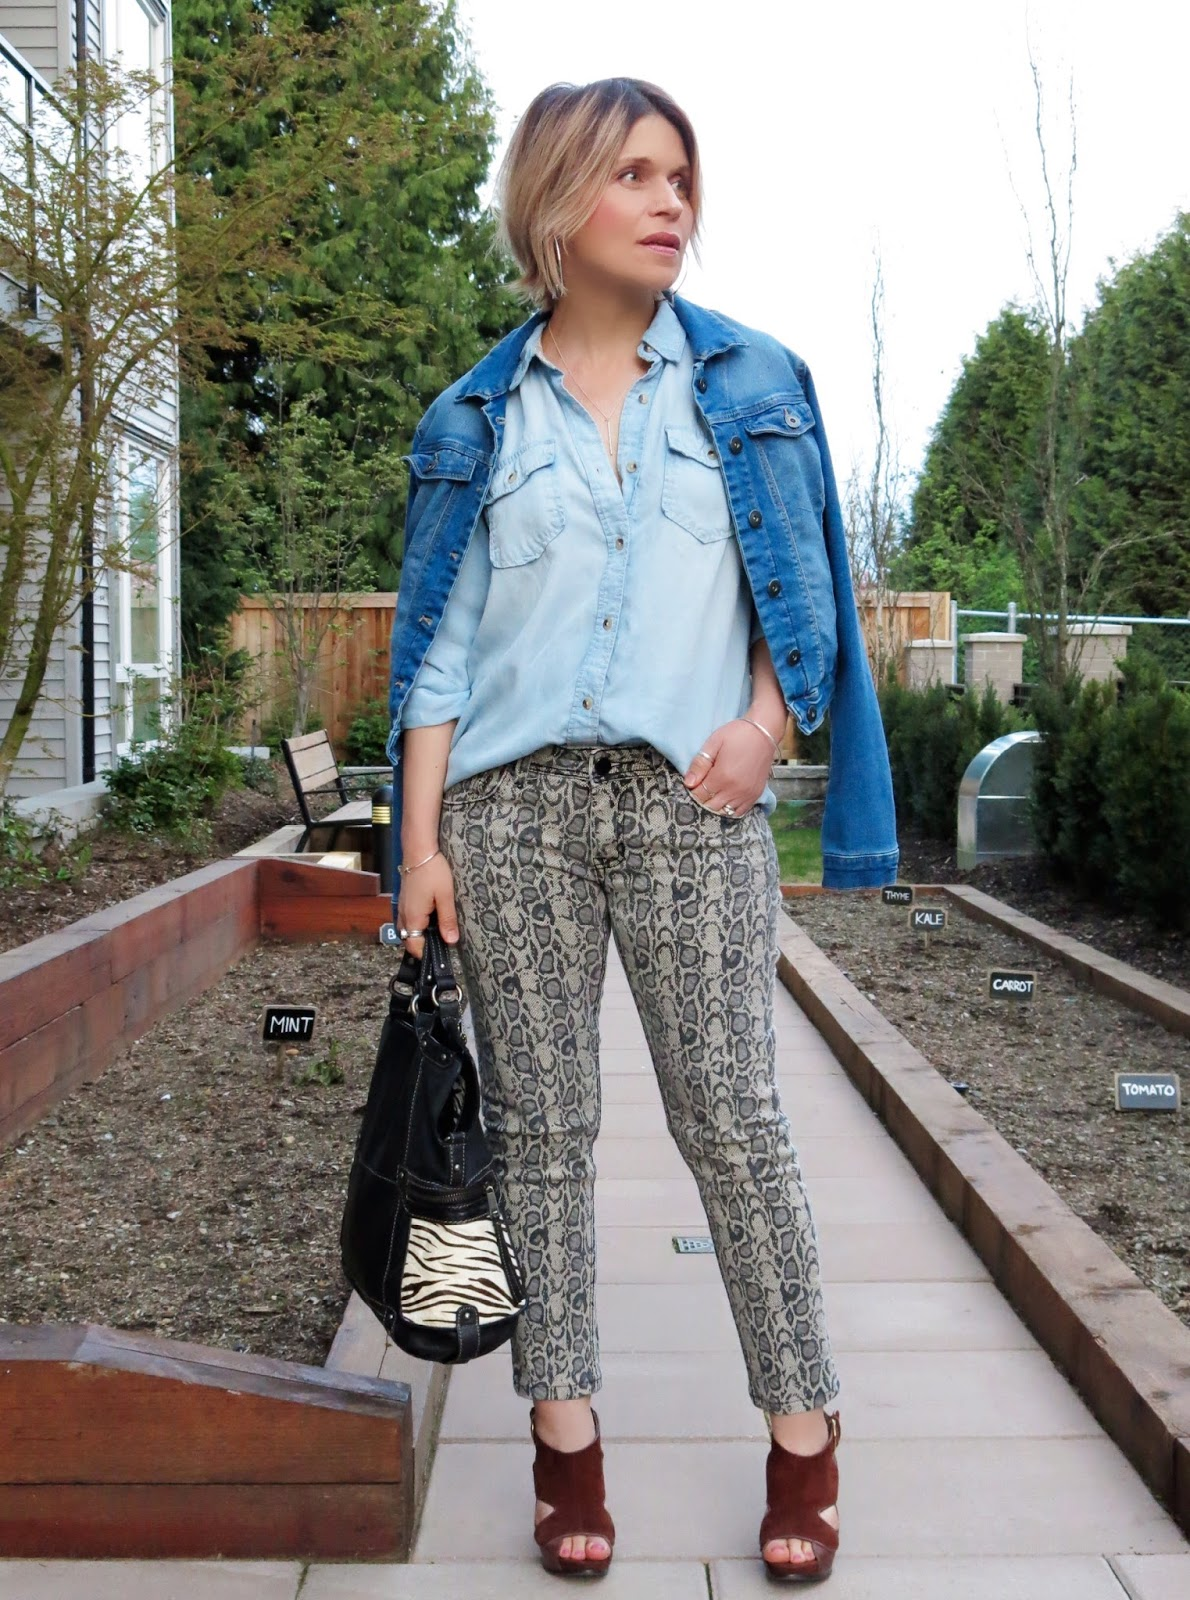 styling snakeskin-patterned jeans with a chambray shirt and denim jacket